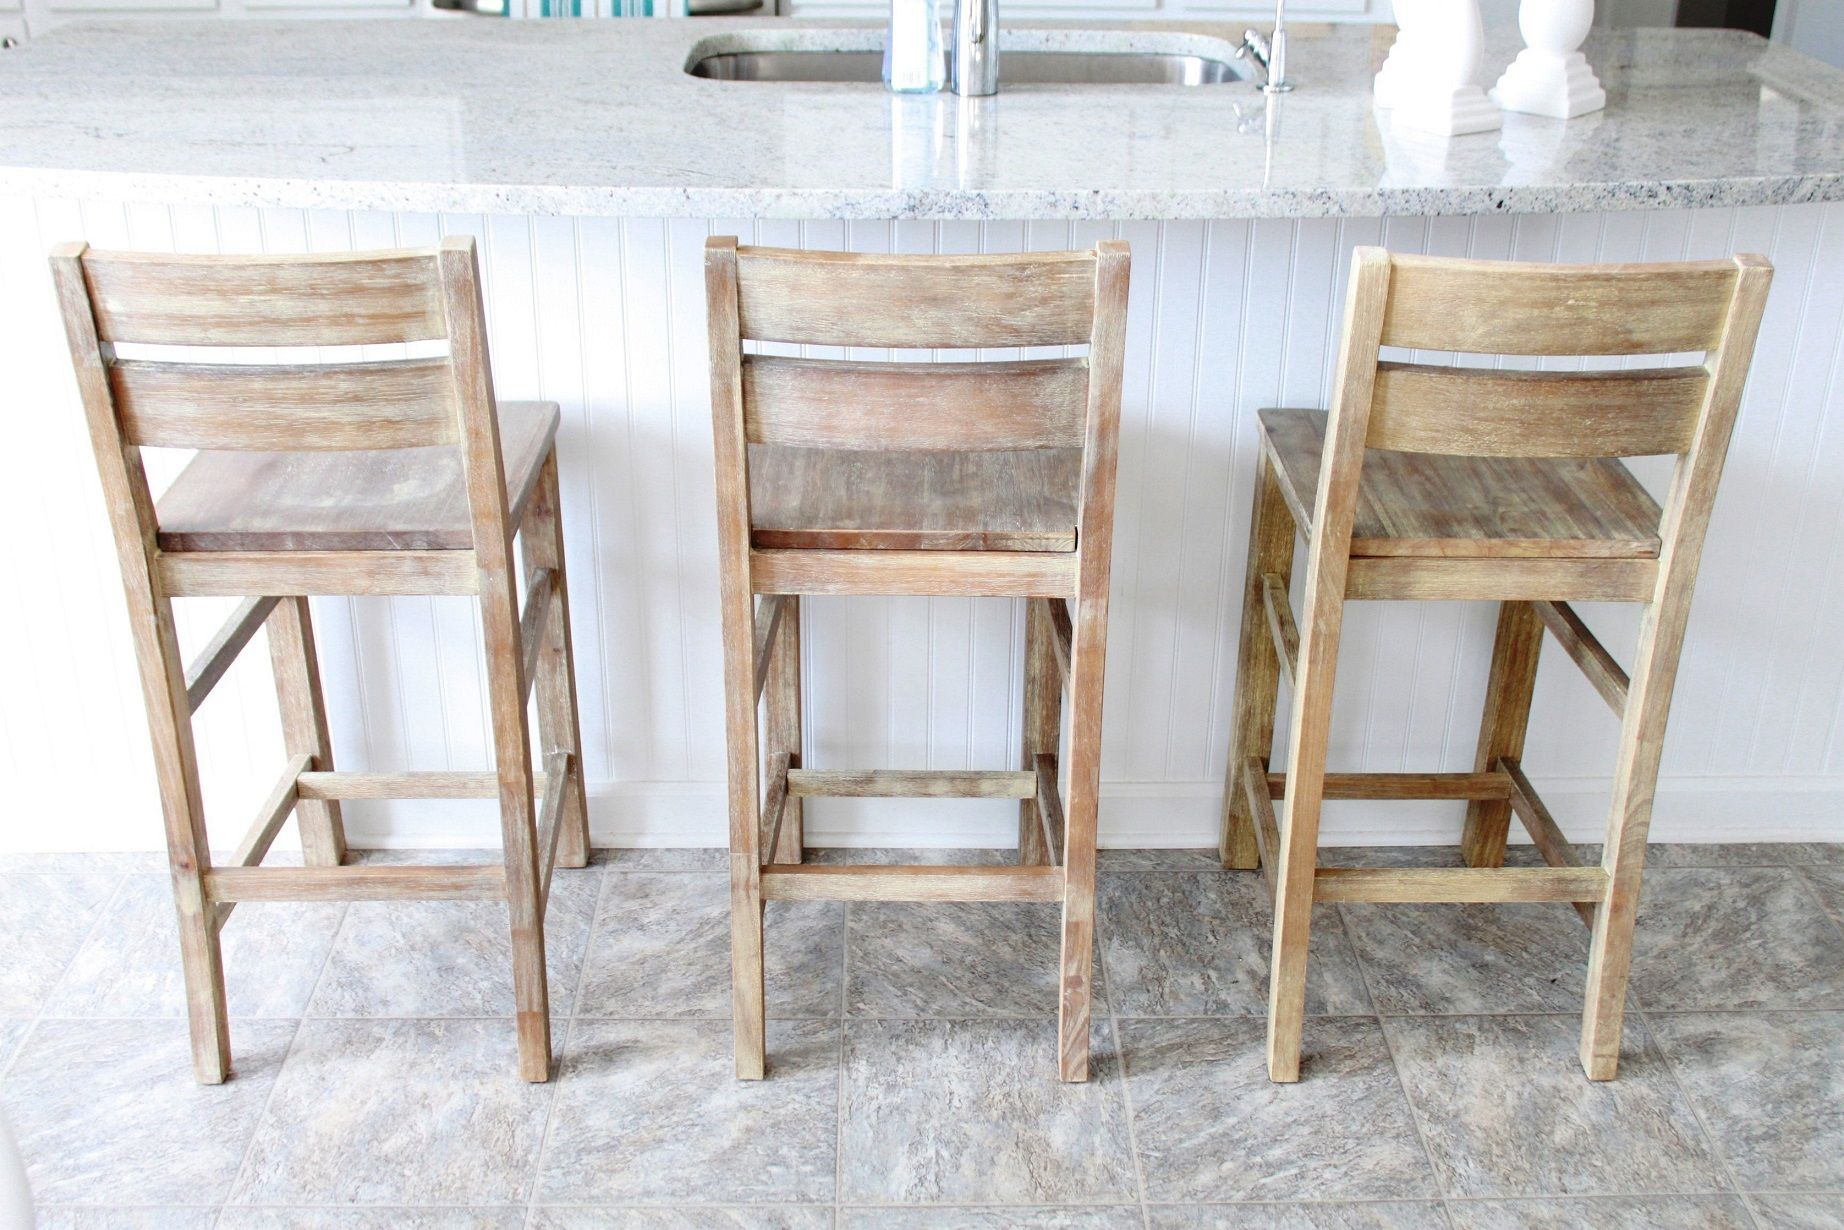 wooden kitchen stools designer colors diy bar with backs ideas in 2018